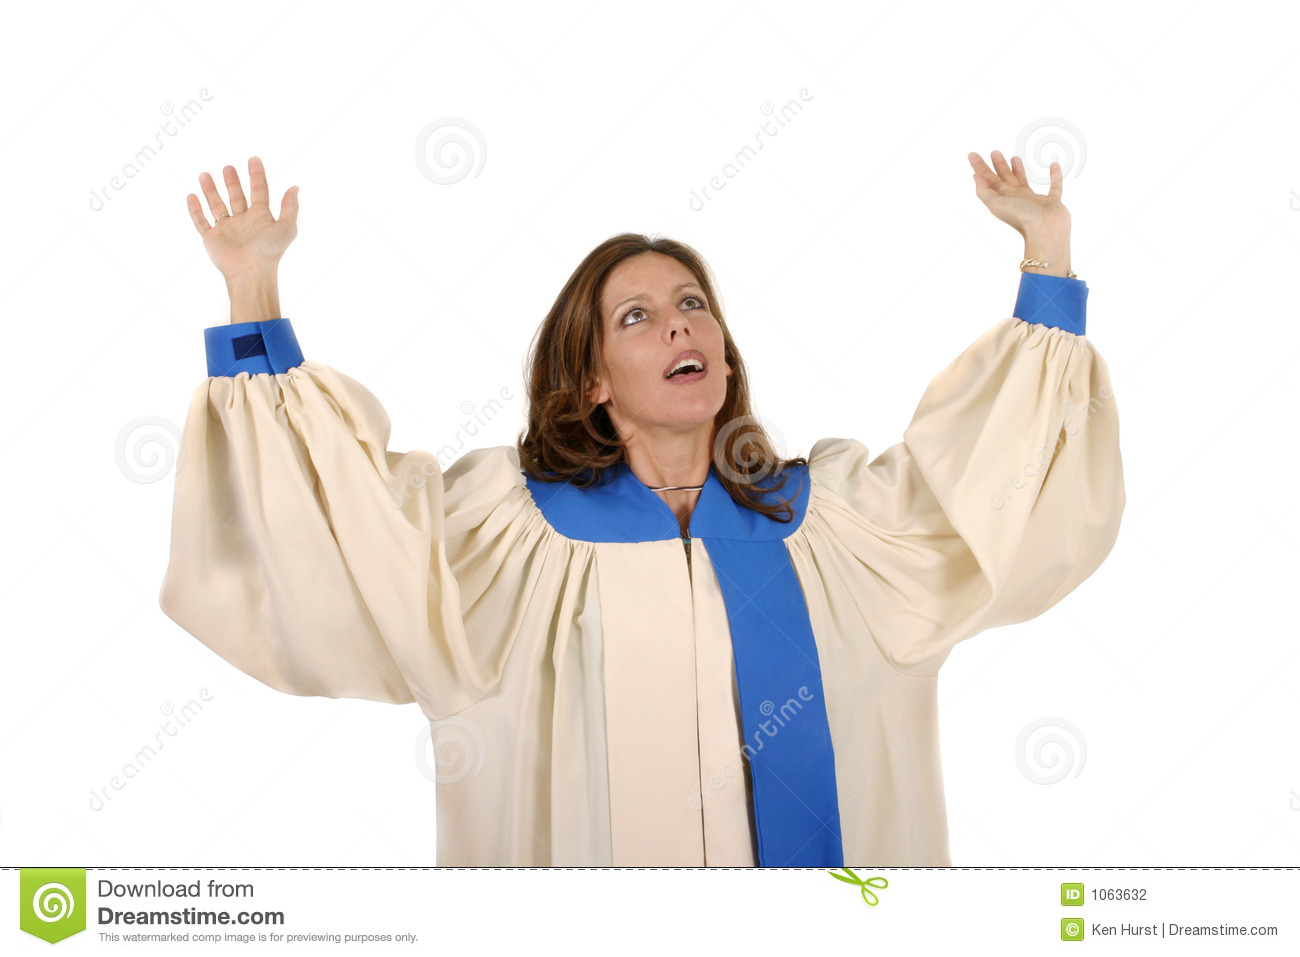 Woman In Church Choir Robe With Her Arms Raised In Charismatic Praise